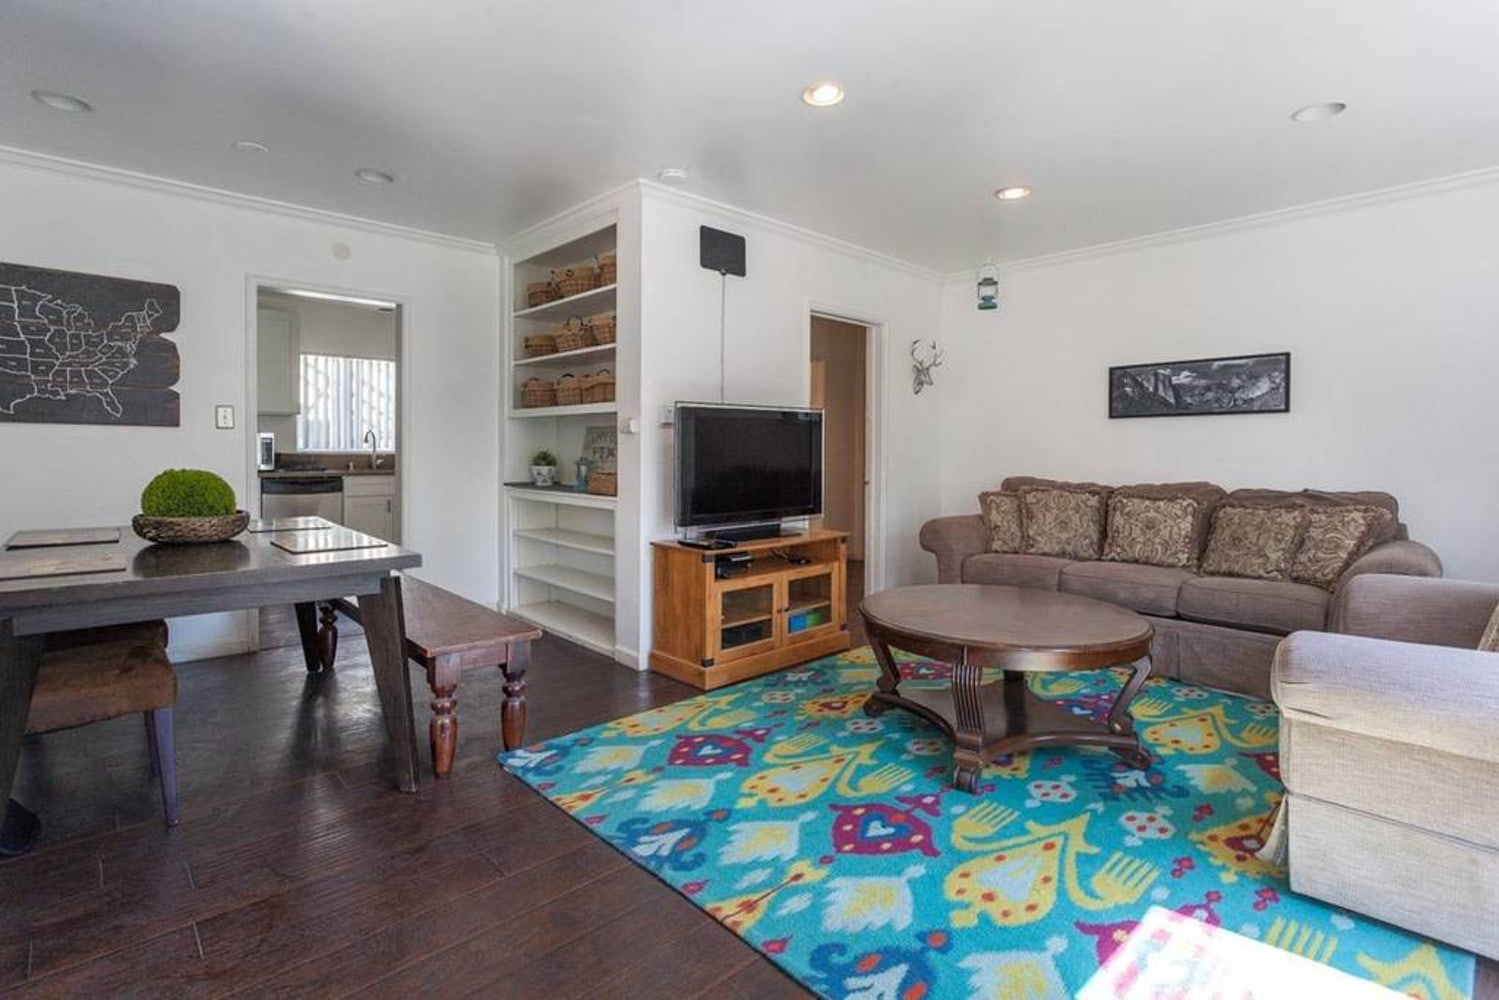 Luxury 2 Bedroom Apartments In Dc for 800 - bedroommaster.co